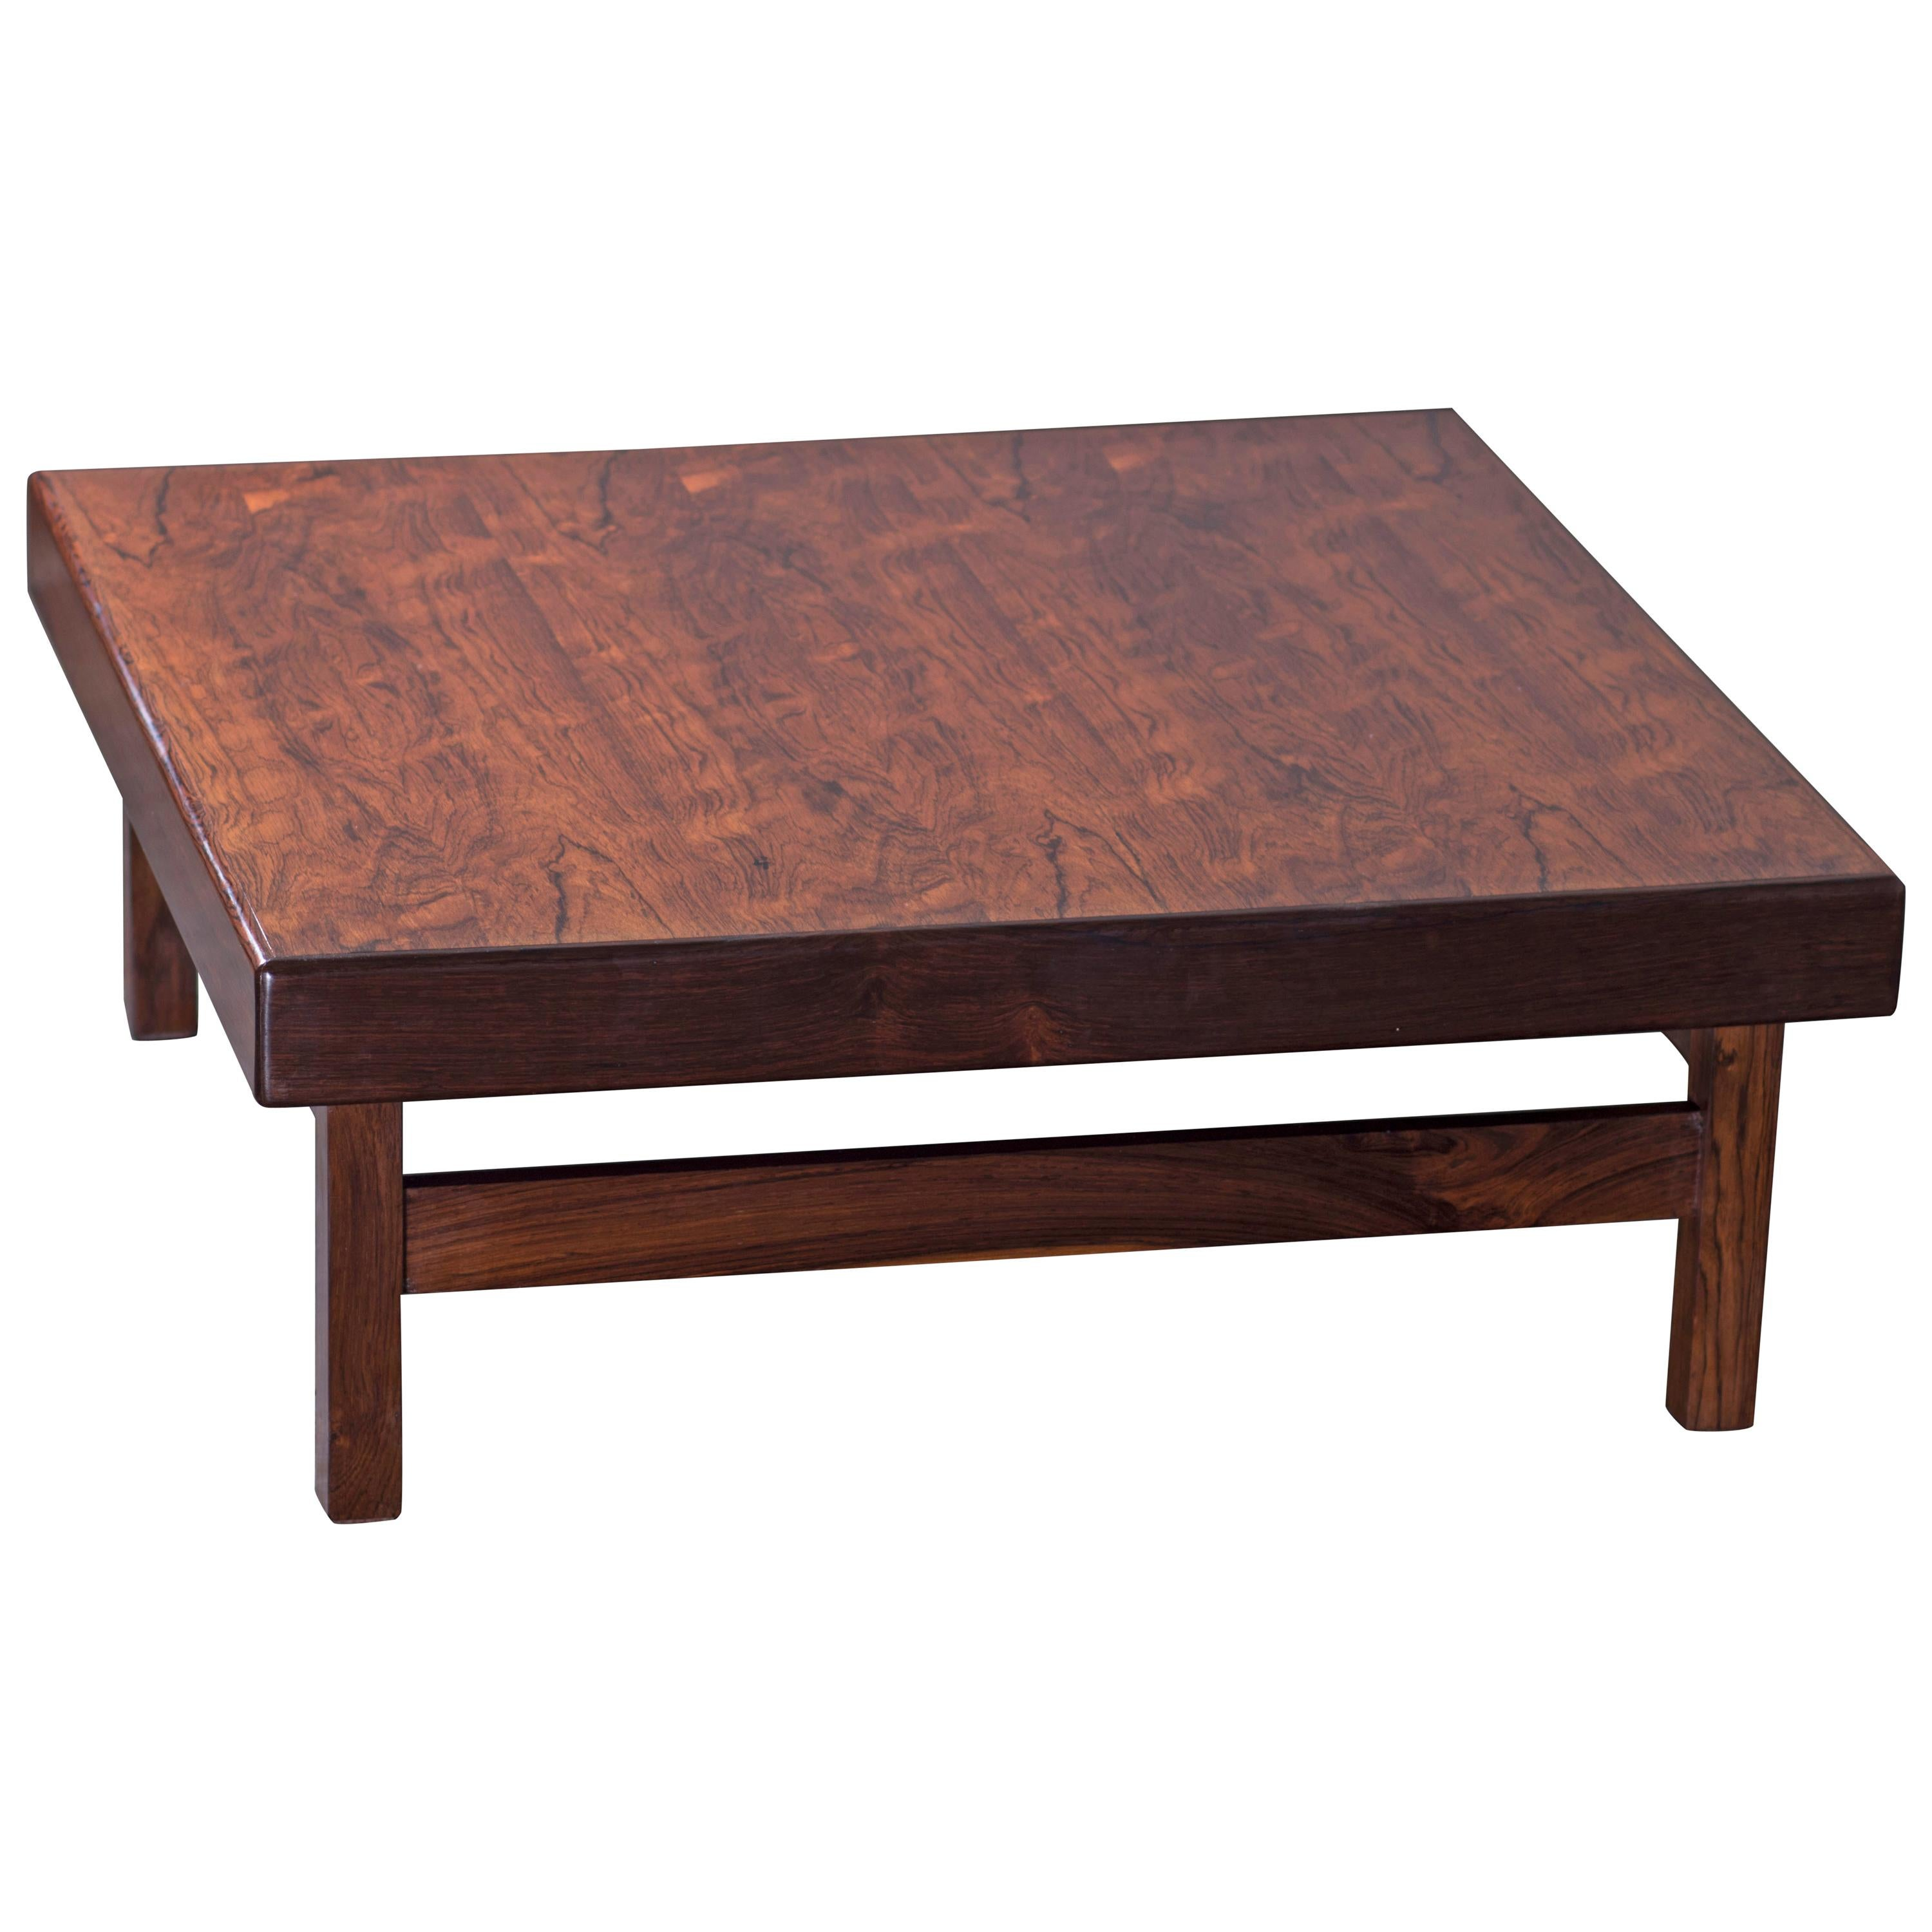 Vintage Vianna Coffee Table by Sergio Rodrigues, 1970s